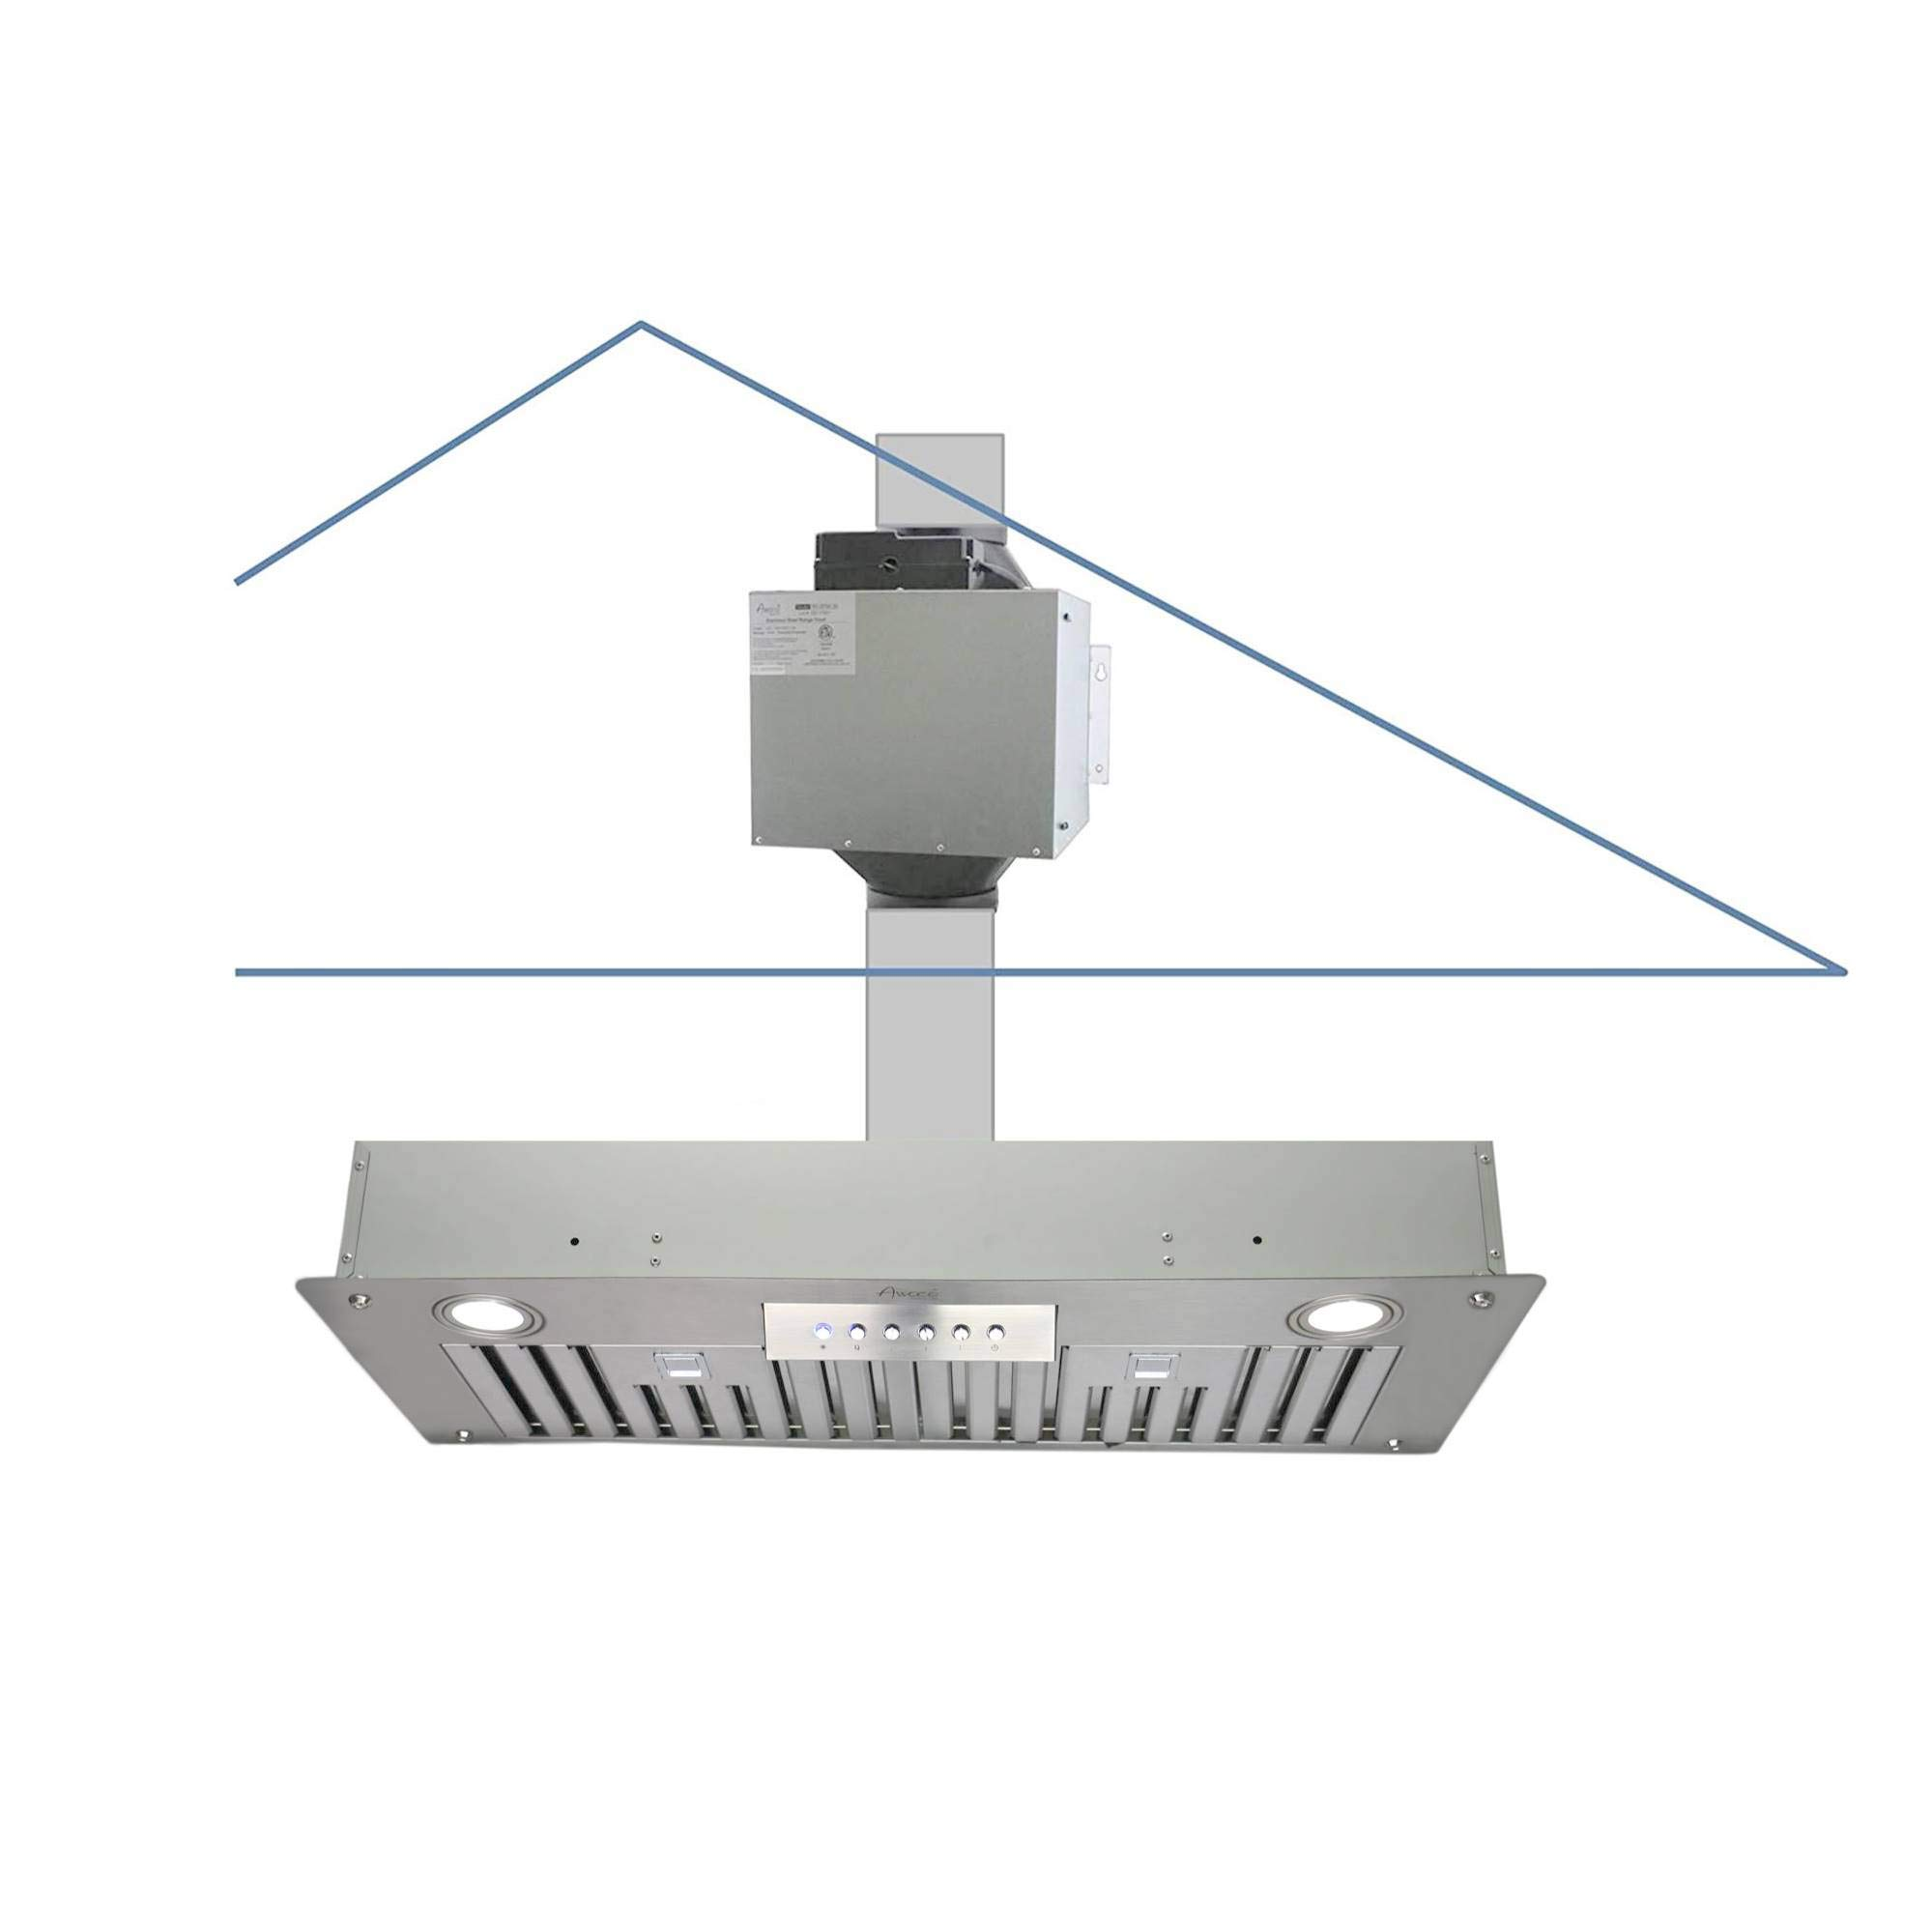 "Awoco Super Quiet Split Insert Stainless Steel Range Hood, 4-Speed, 800 CFM, LED Lights, Baffle Filters with 6"" Blower (36""W 6"" Vent)"